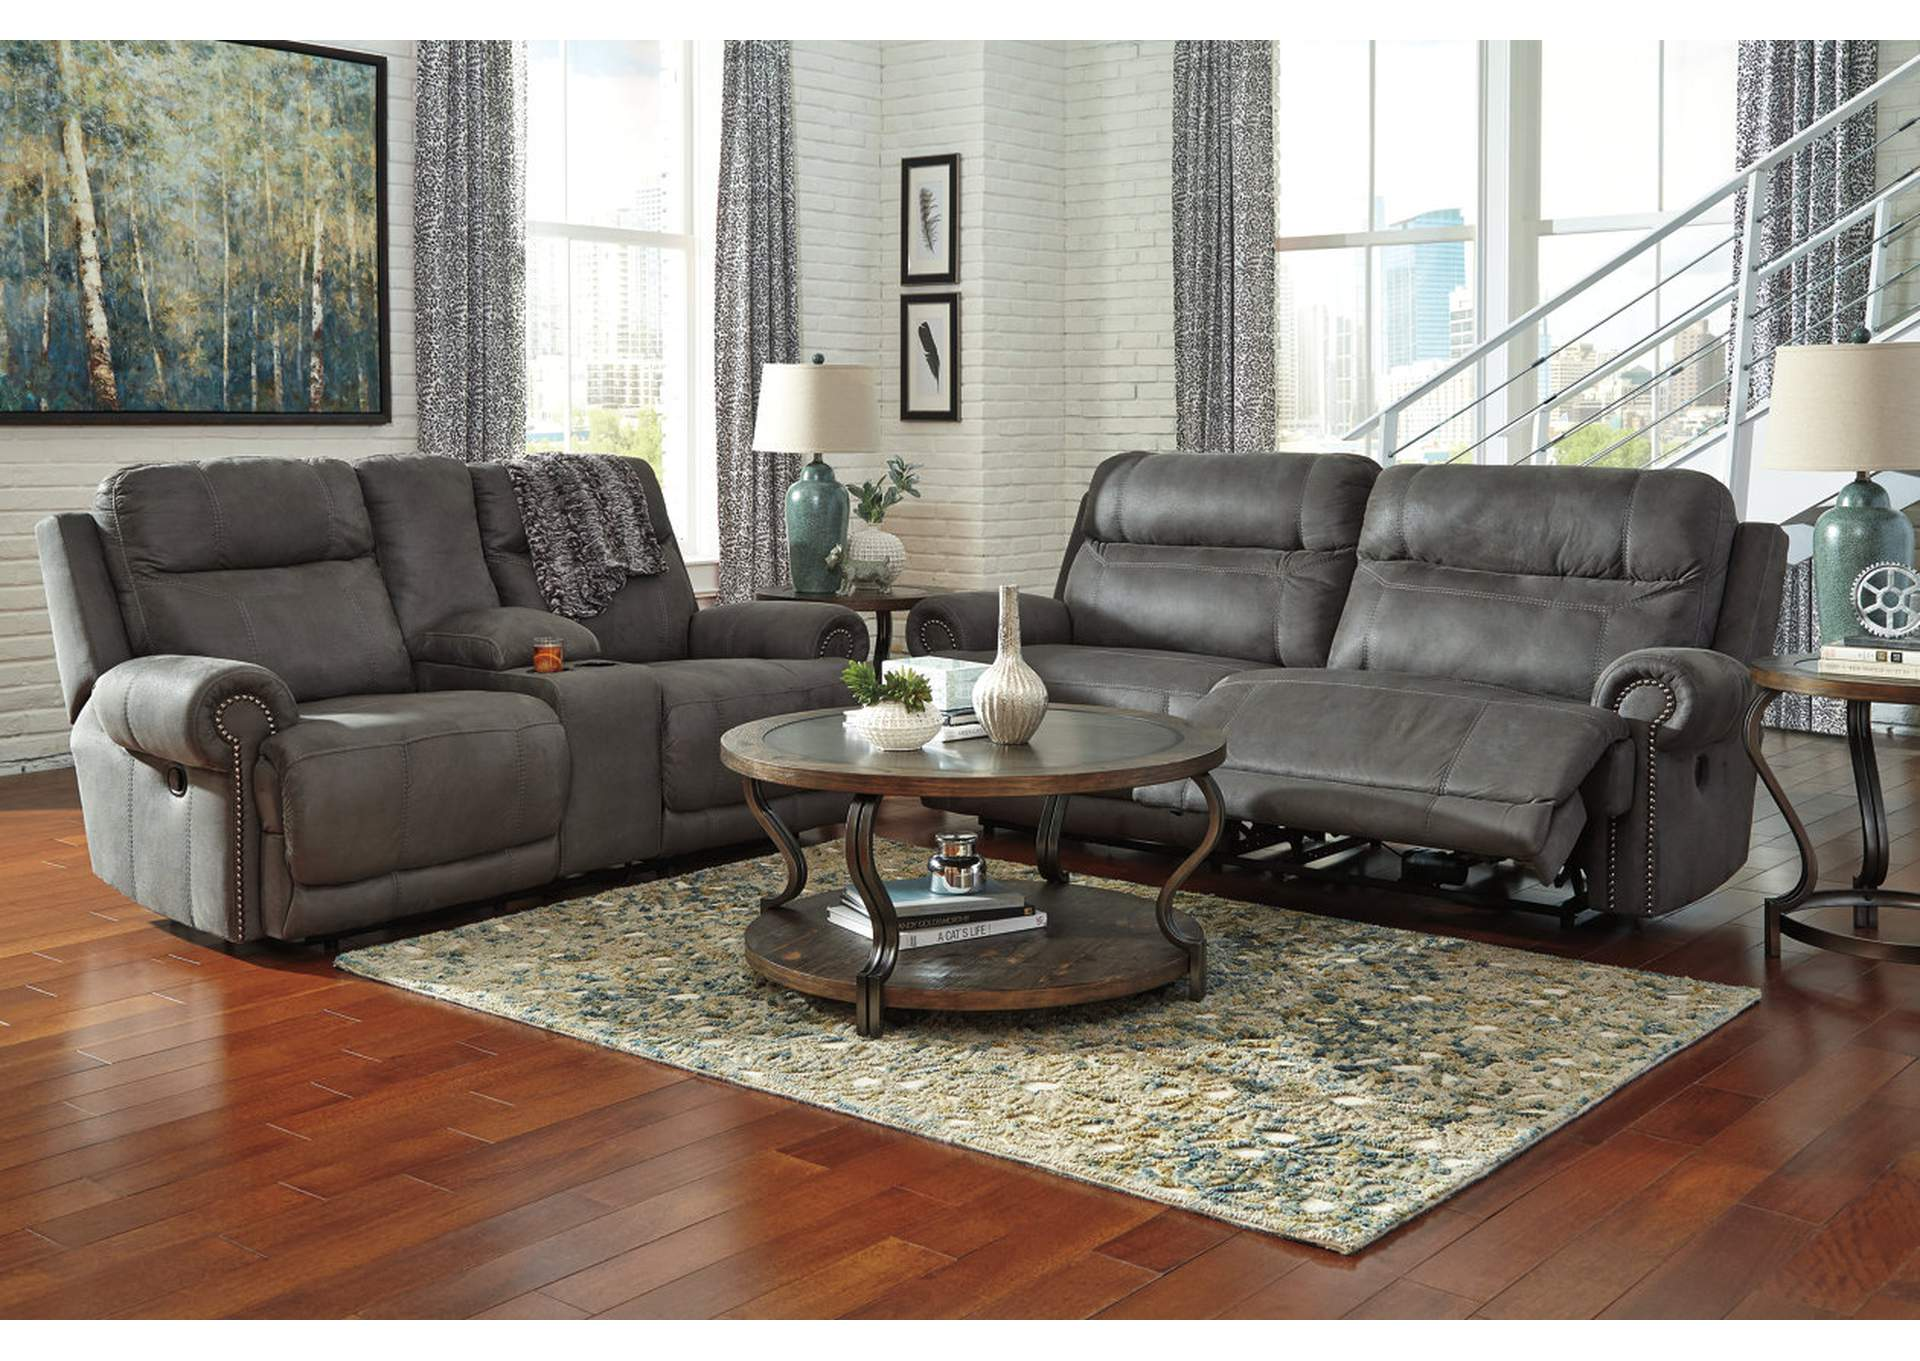 Austere Gray 2 Seat Power Reclining Sofa & Loveseat,Signature Design By Ashley